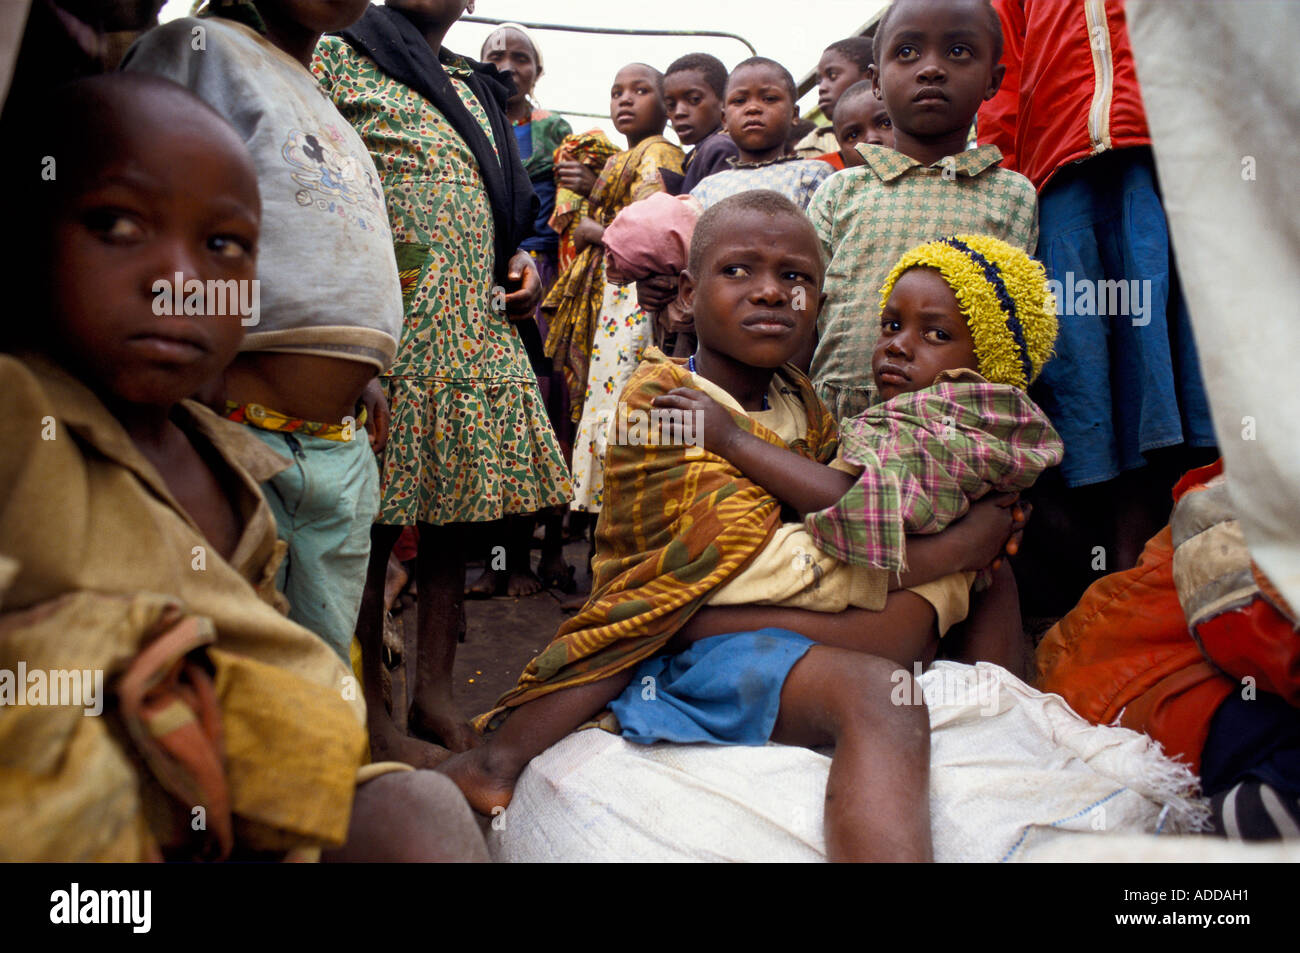 Hutu children returnees from camps in Zaire arriving at a way station on the way to Kigali, the Rwandan capital. - Stock Image